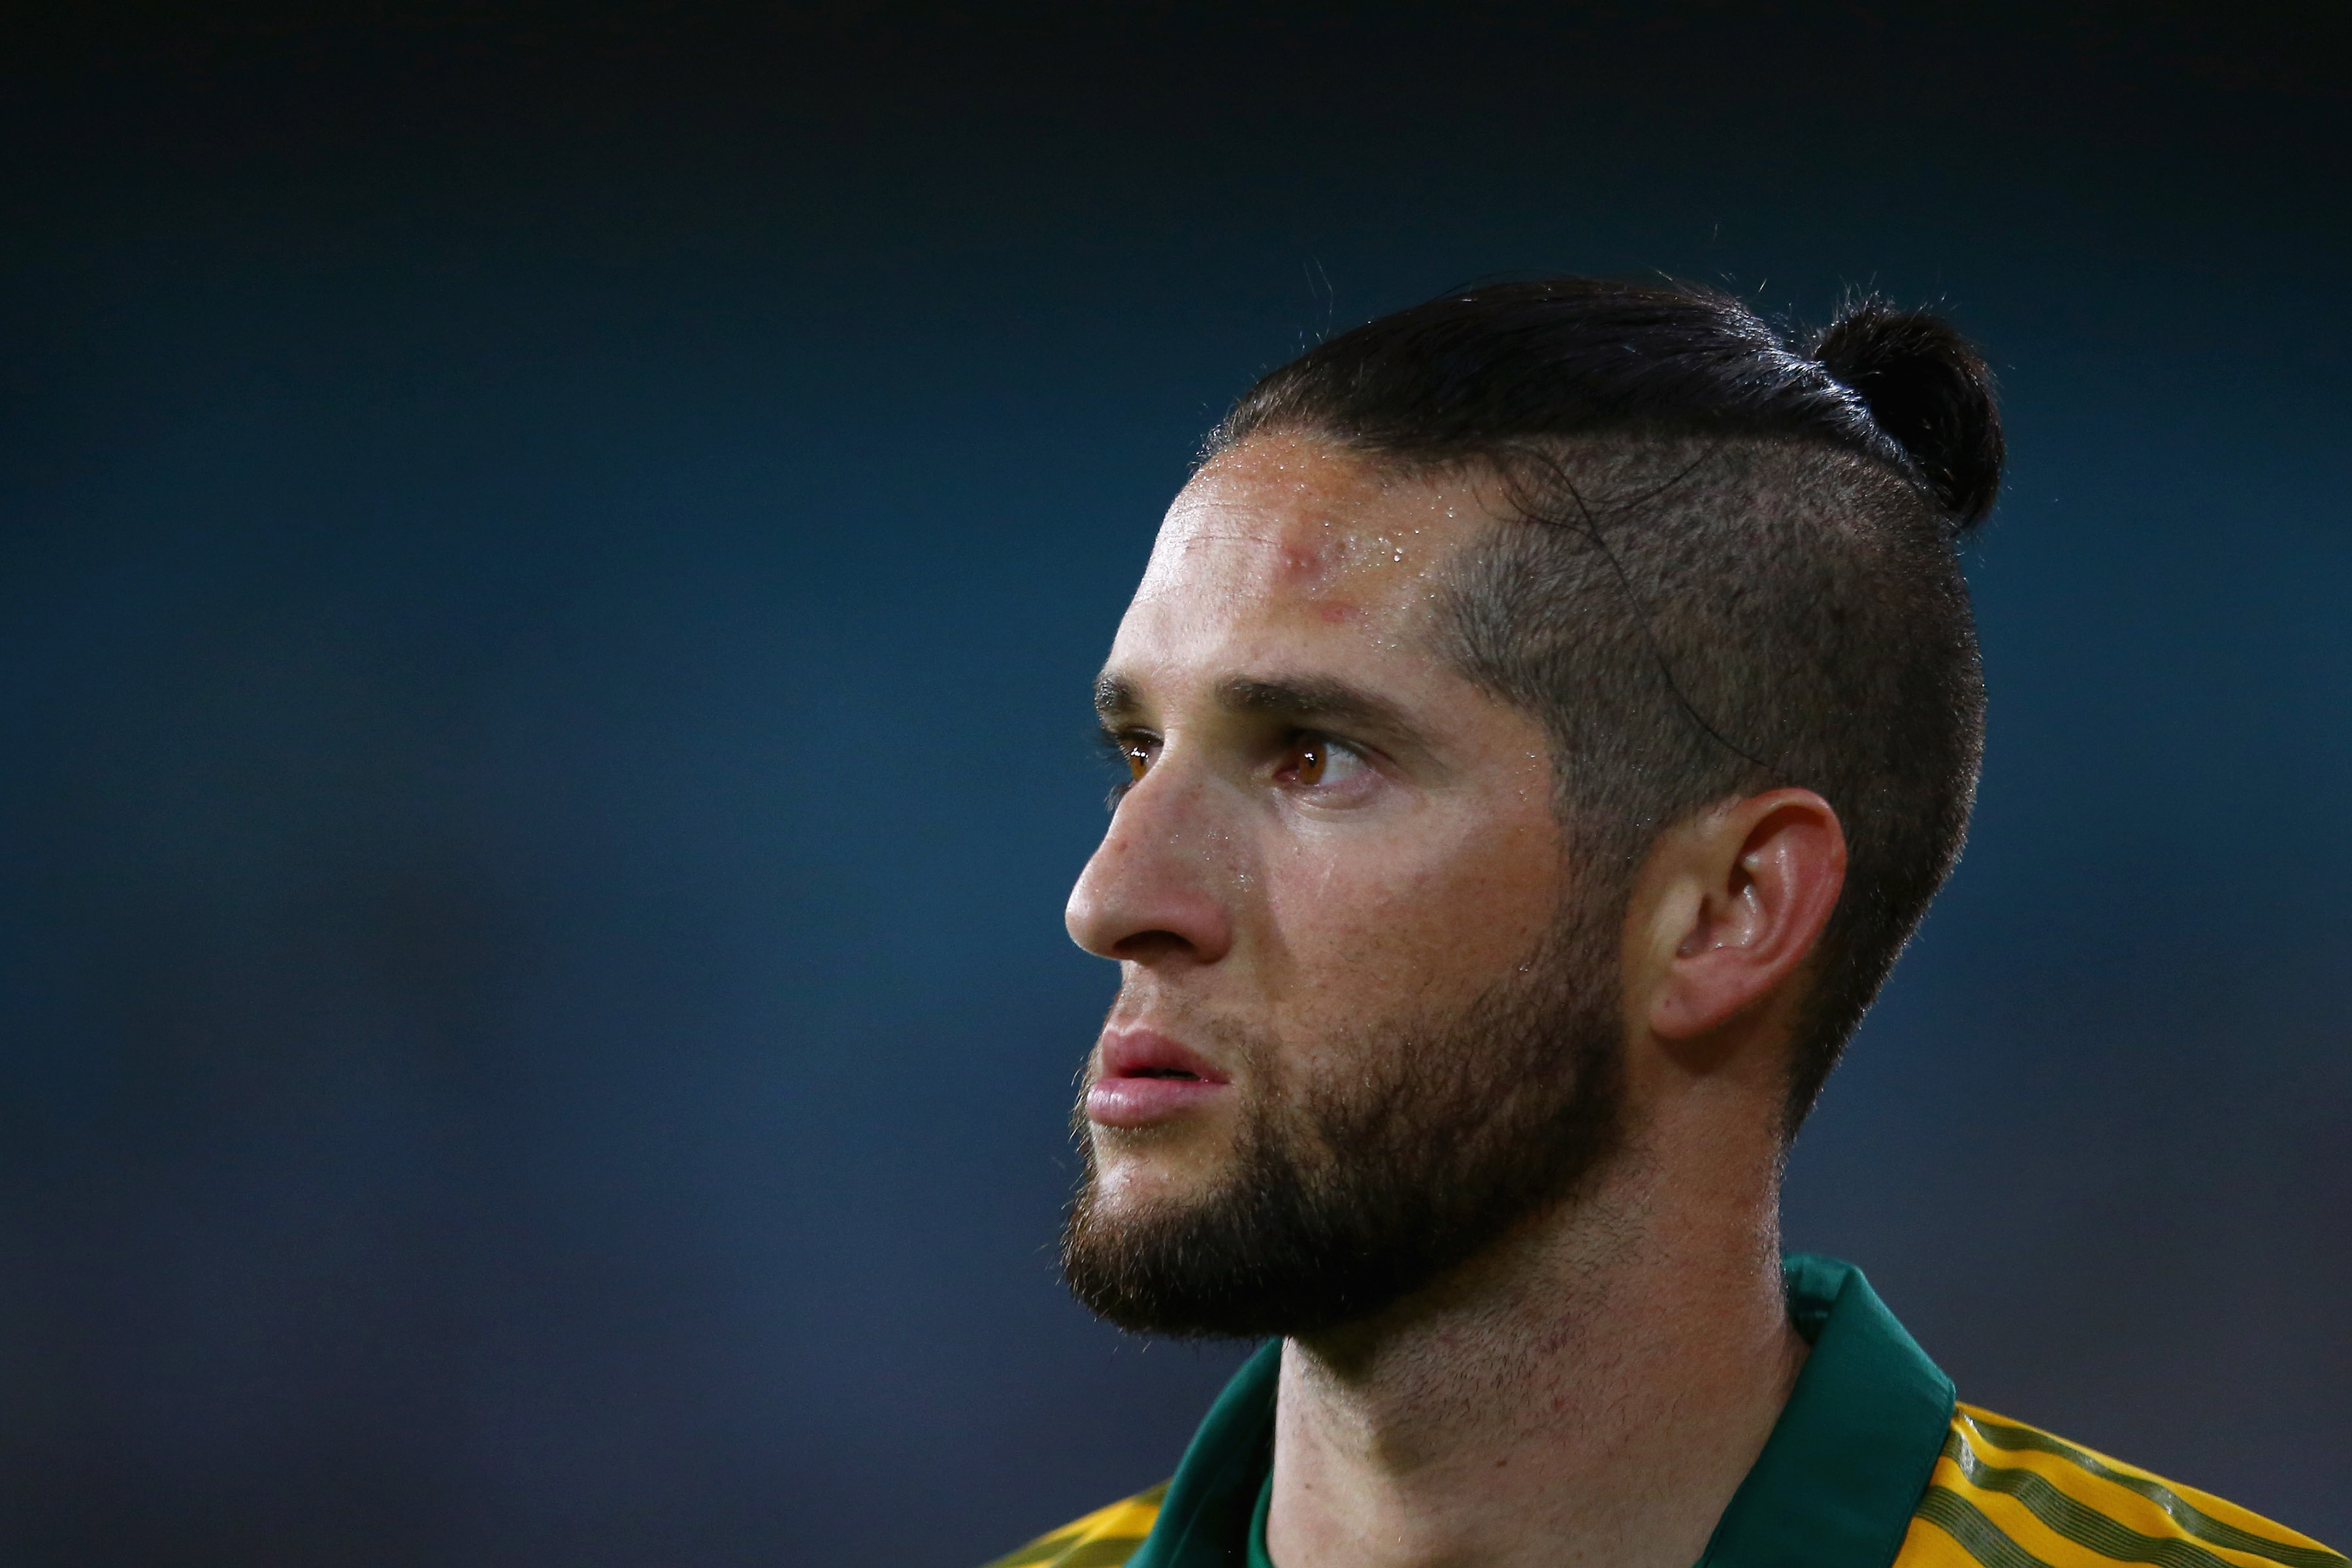 9 November 2014: Wayne Parnell of South Africa during the third game of the Proteas' Twenty20 series against Australia at ANZ Stadium in Sydney, Australia. (Photograph by Mark Kolbe/Getty Images)